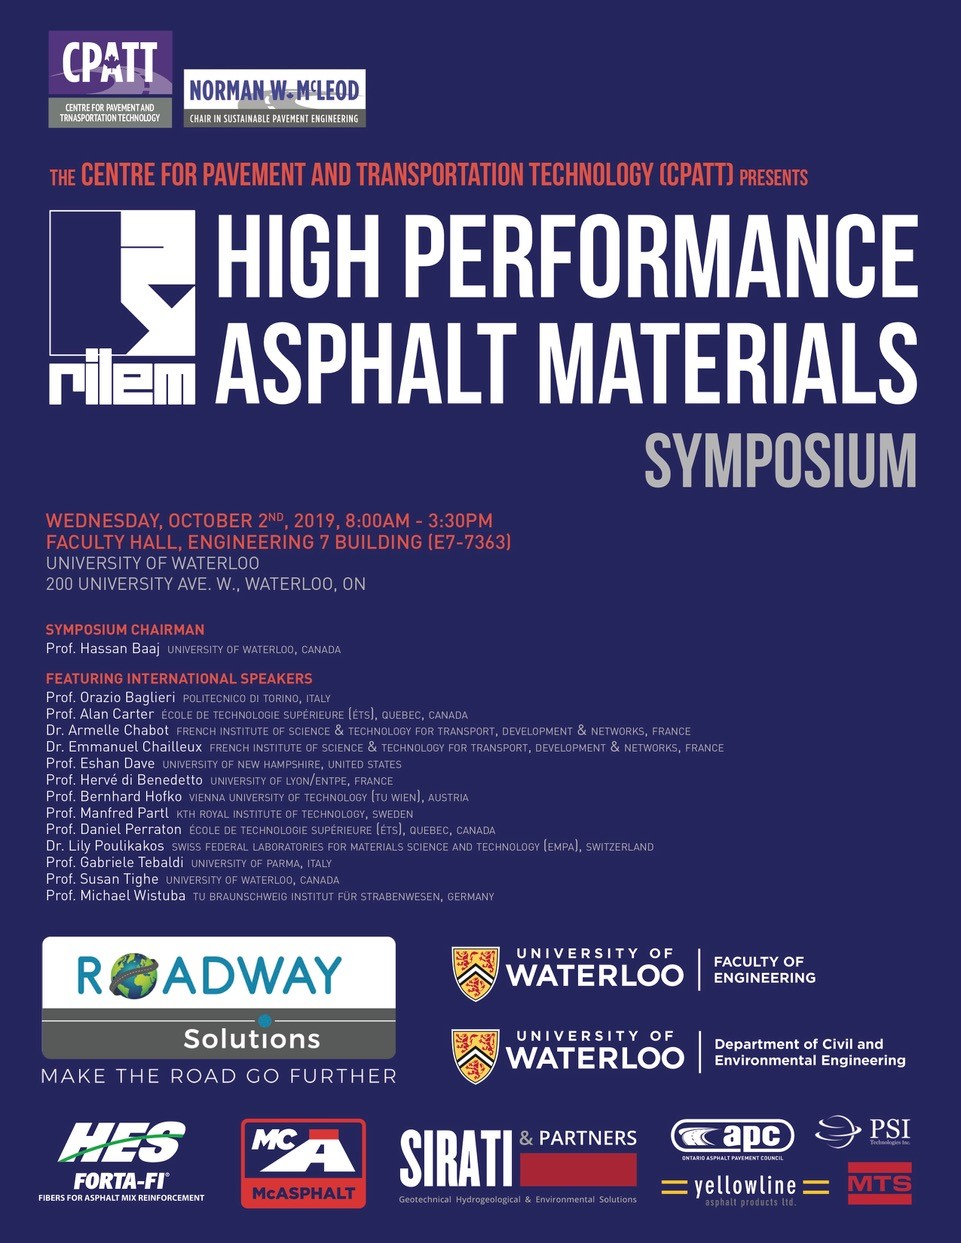 High Performance Asphalt Materials Symposium Poster